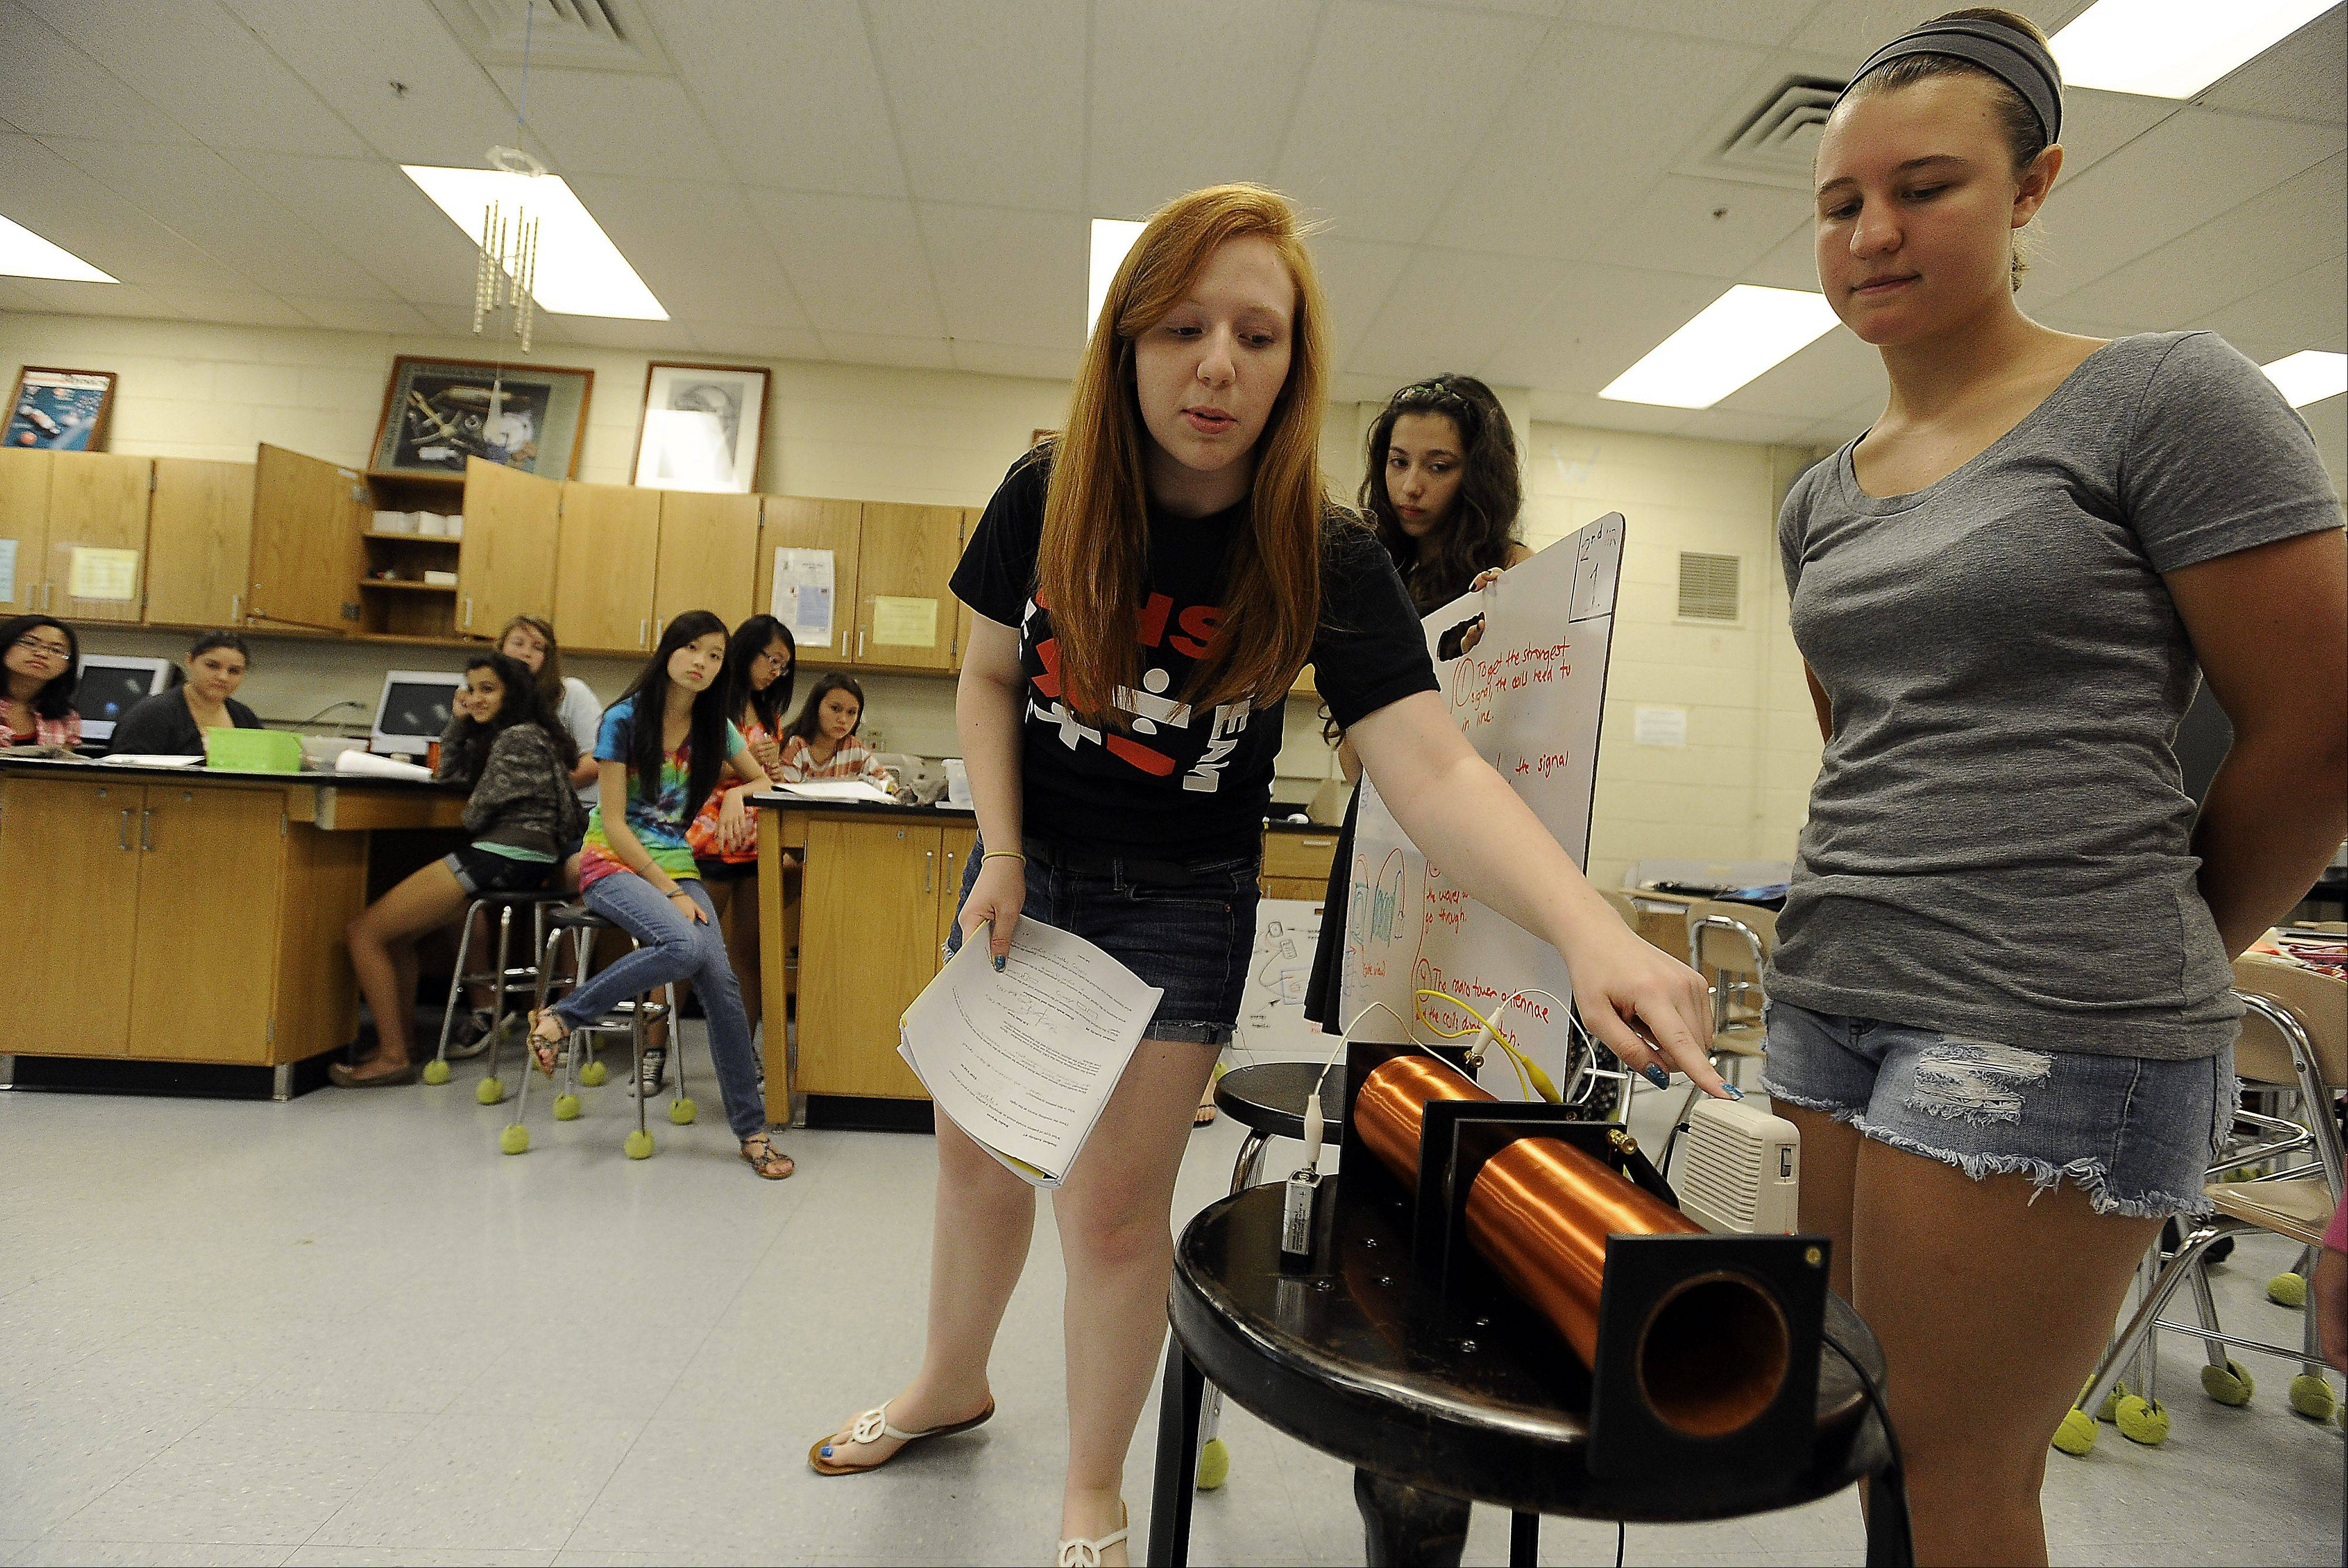 Courtney Wilt, 16, of Inverness explains her physics project to her fellow classmates as her project partner Leah Thomas, 16, of Barrington looks on during summer school at Barrington High School.